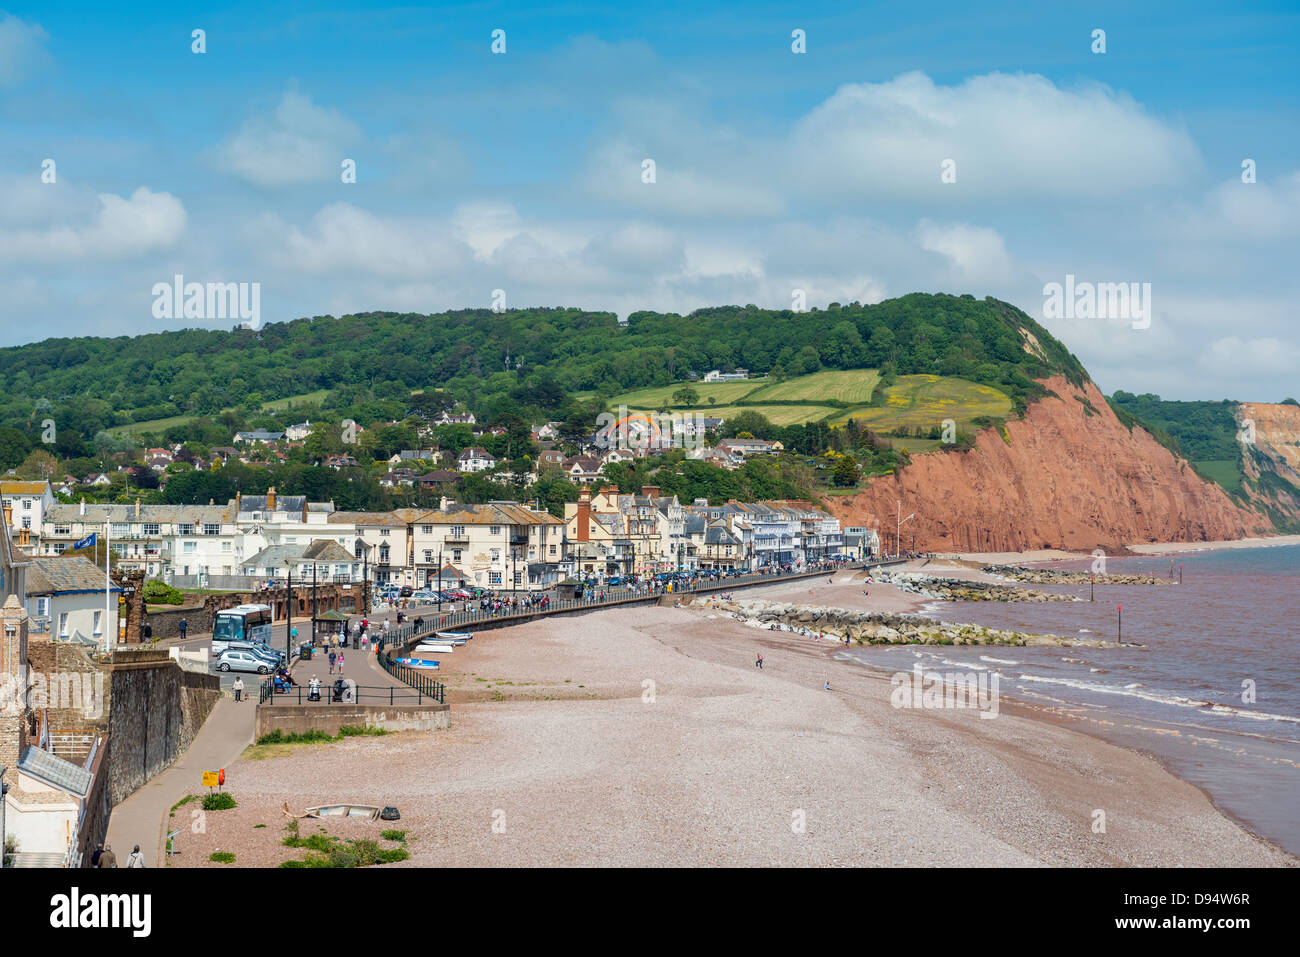 Sidmouth Devon England Sidmouth Town And Sea Front With